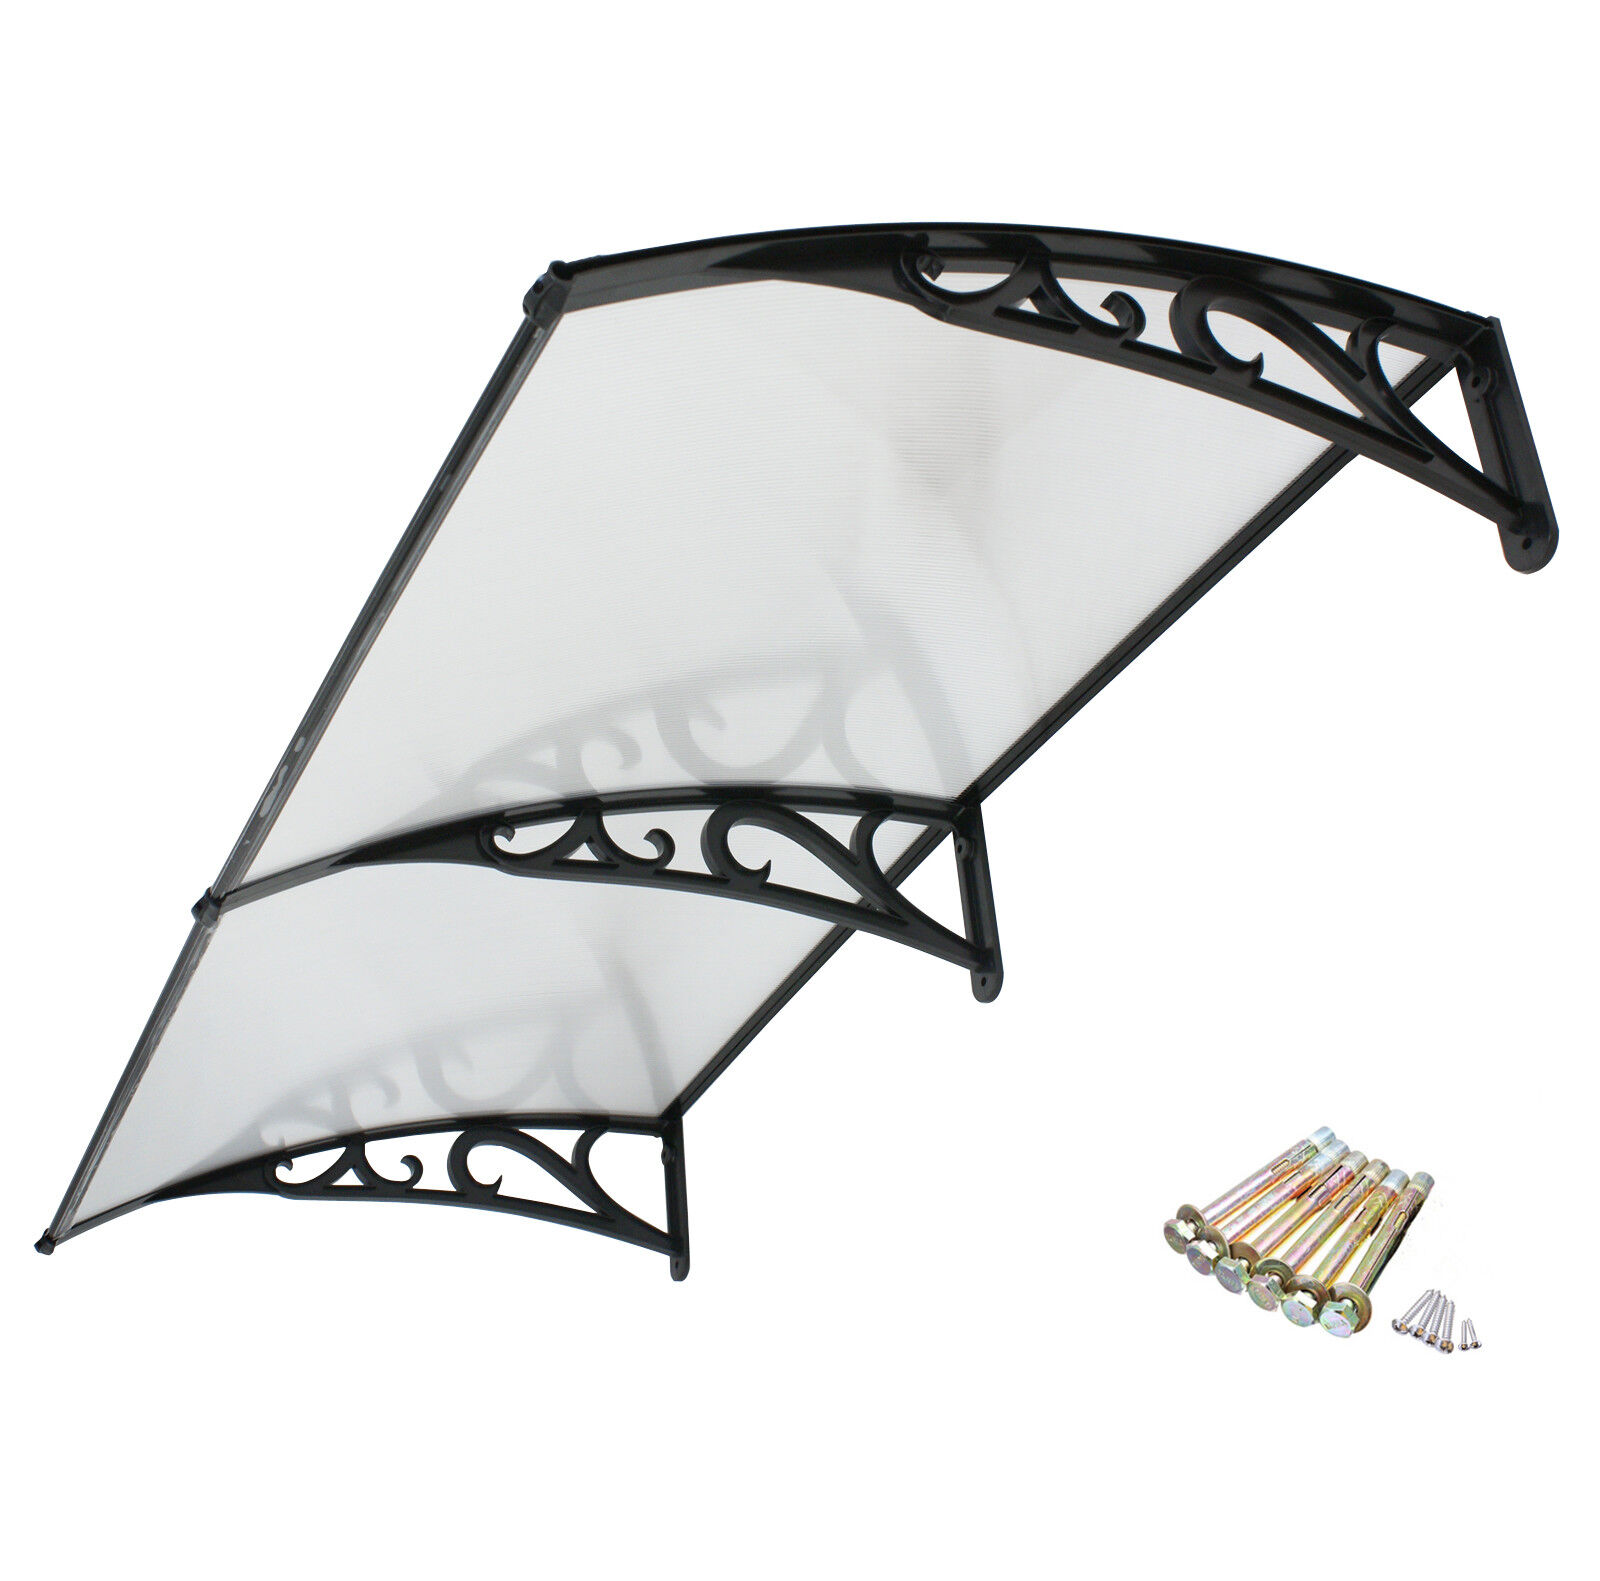 Outdoor Clear Seamless Awning Door Window Polycarbonate Cover Overhead Awning & Canopy Parts